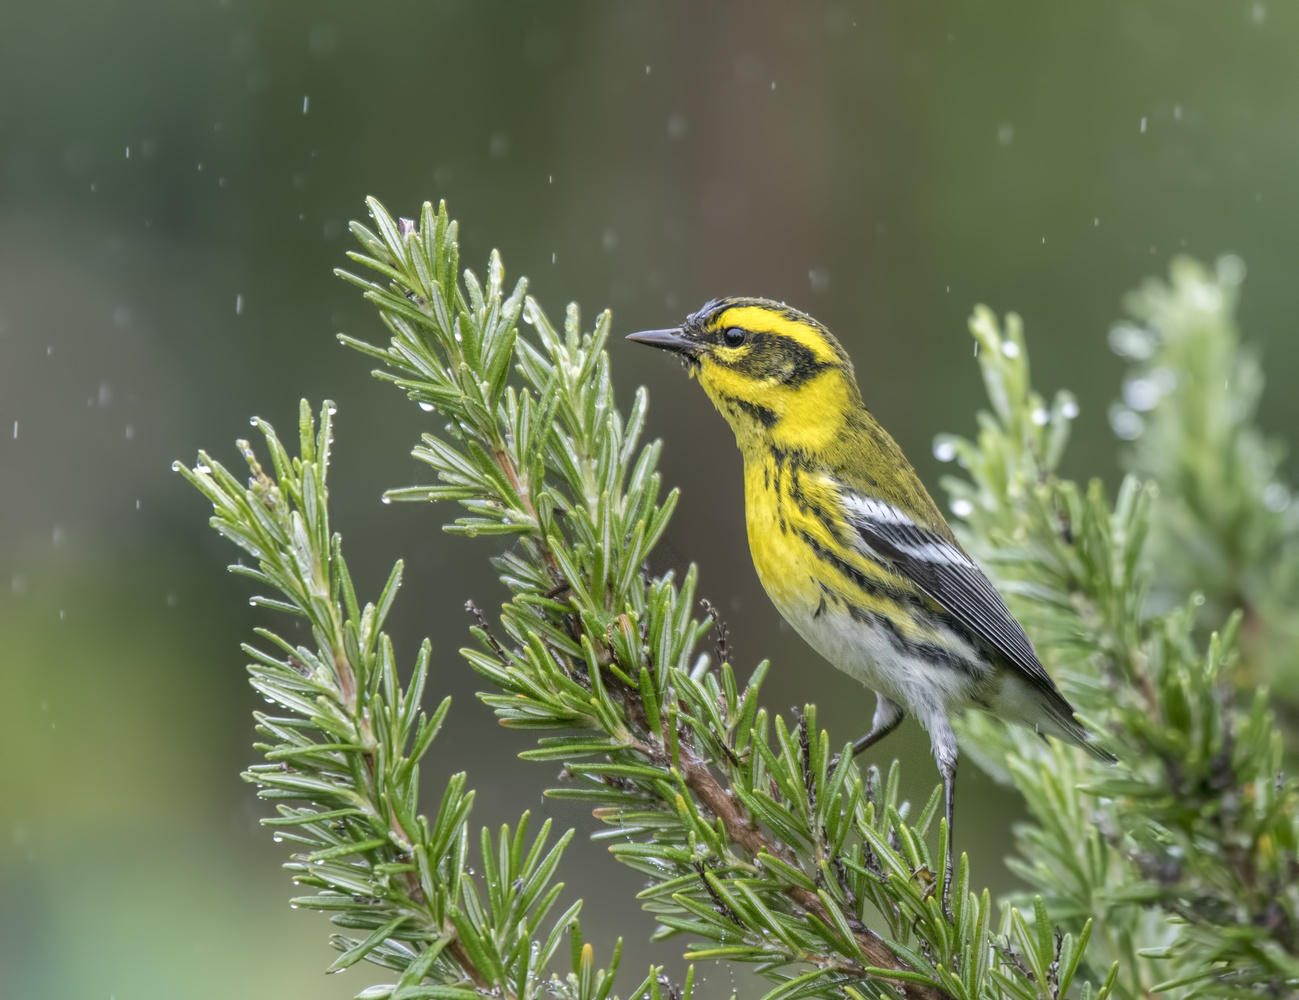 Townsend's warbler by Nickolas Thurston